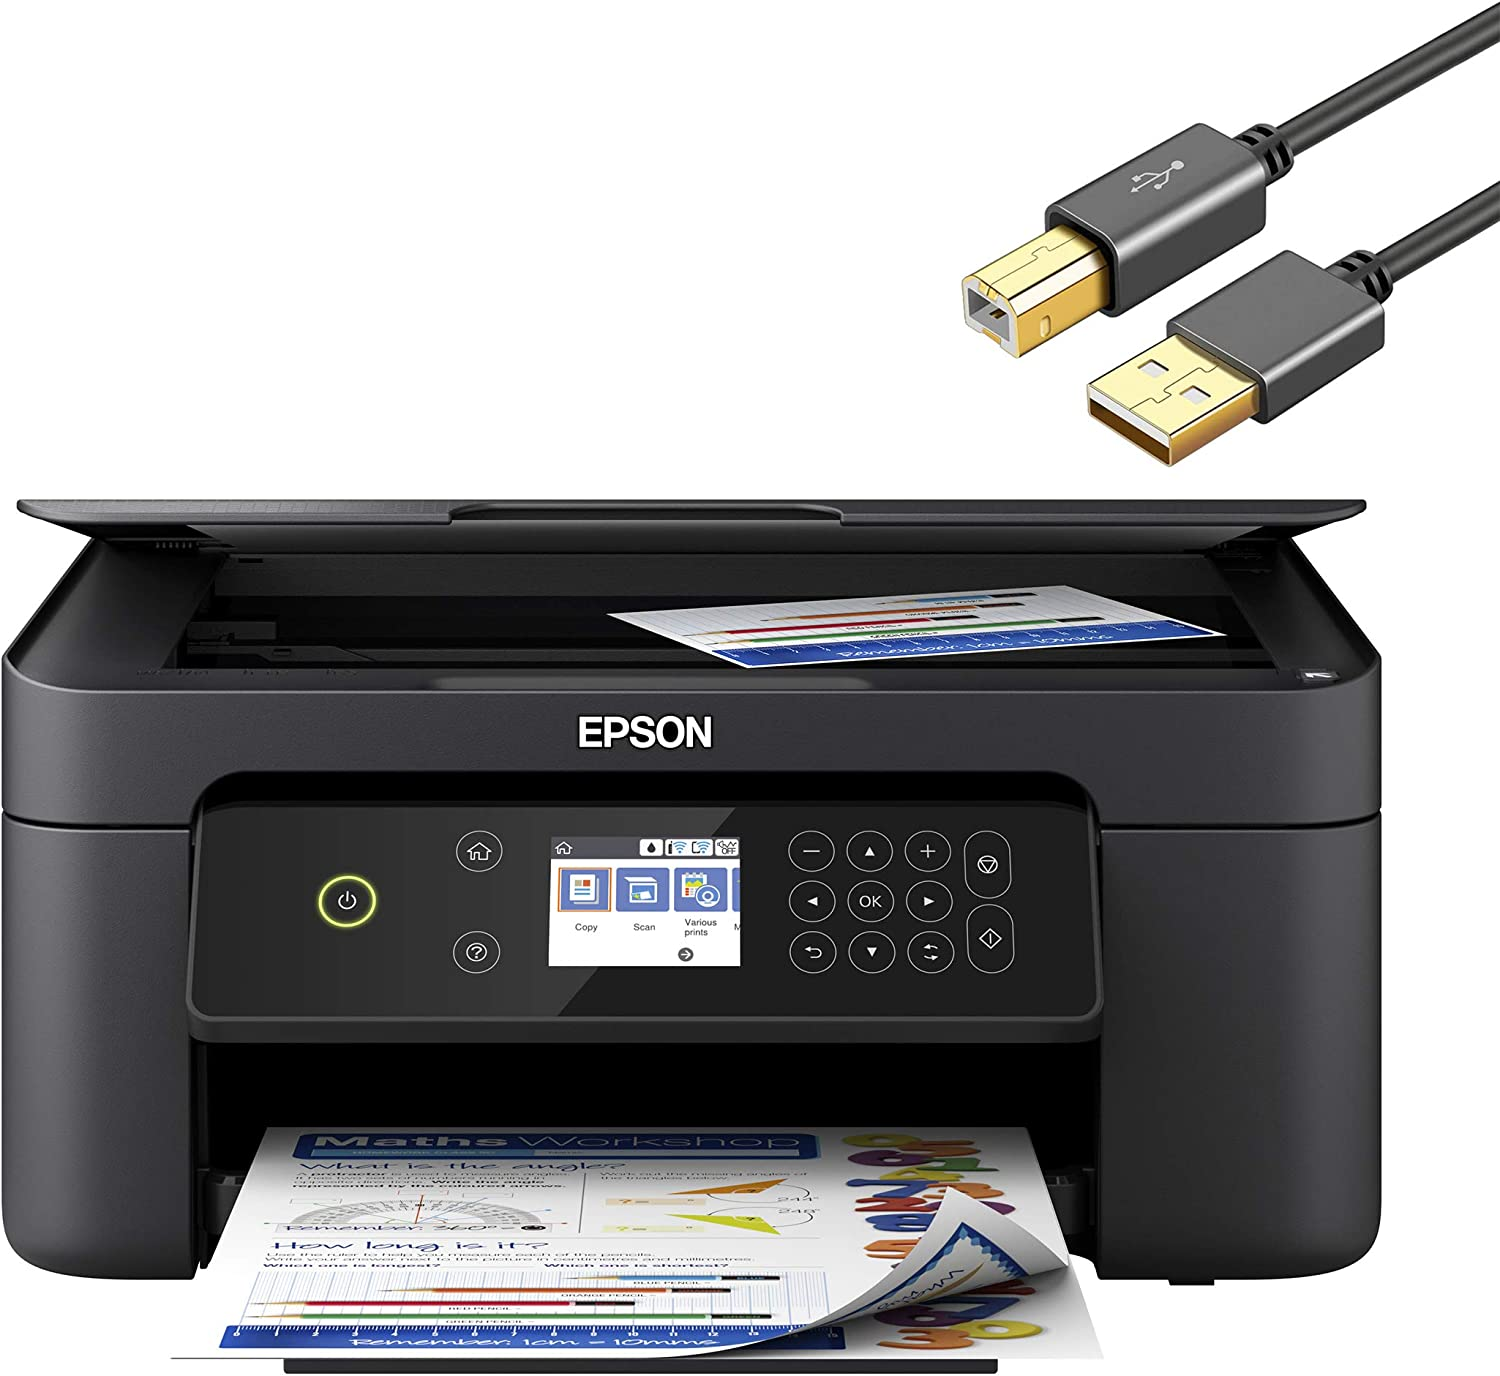 Epson Expression Home XP 4000 Series Wireless All-in-One Color Inkjet Printer for Business Office - Print Scan Copy - 2.4